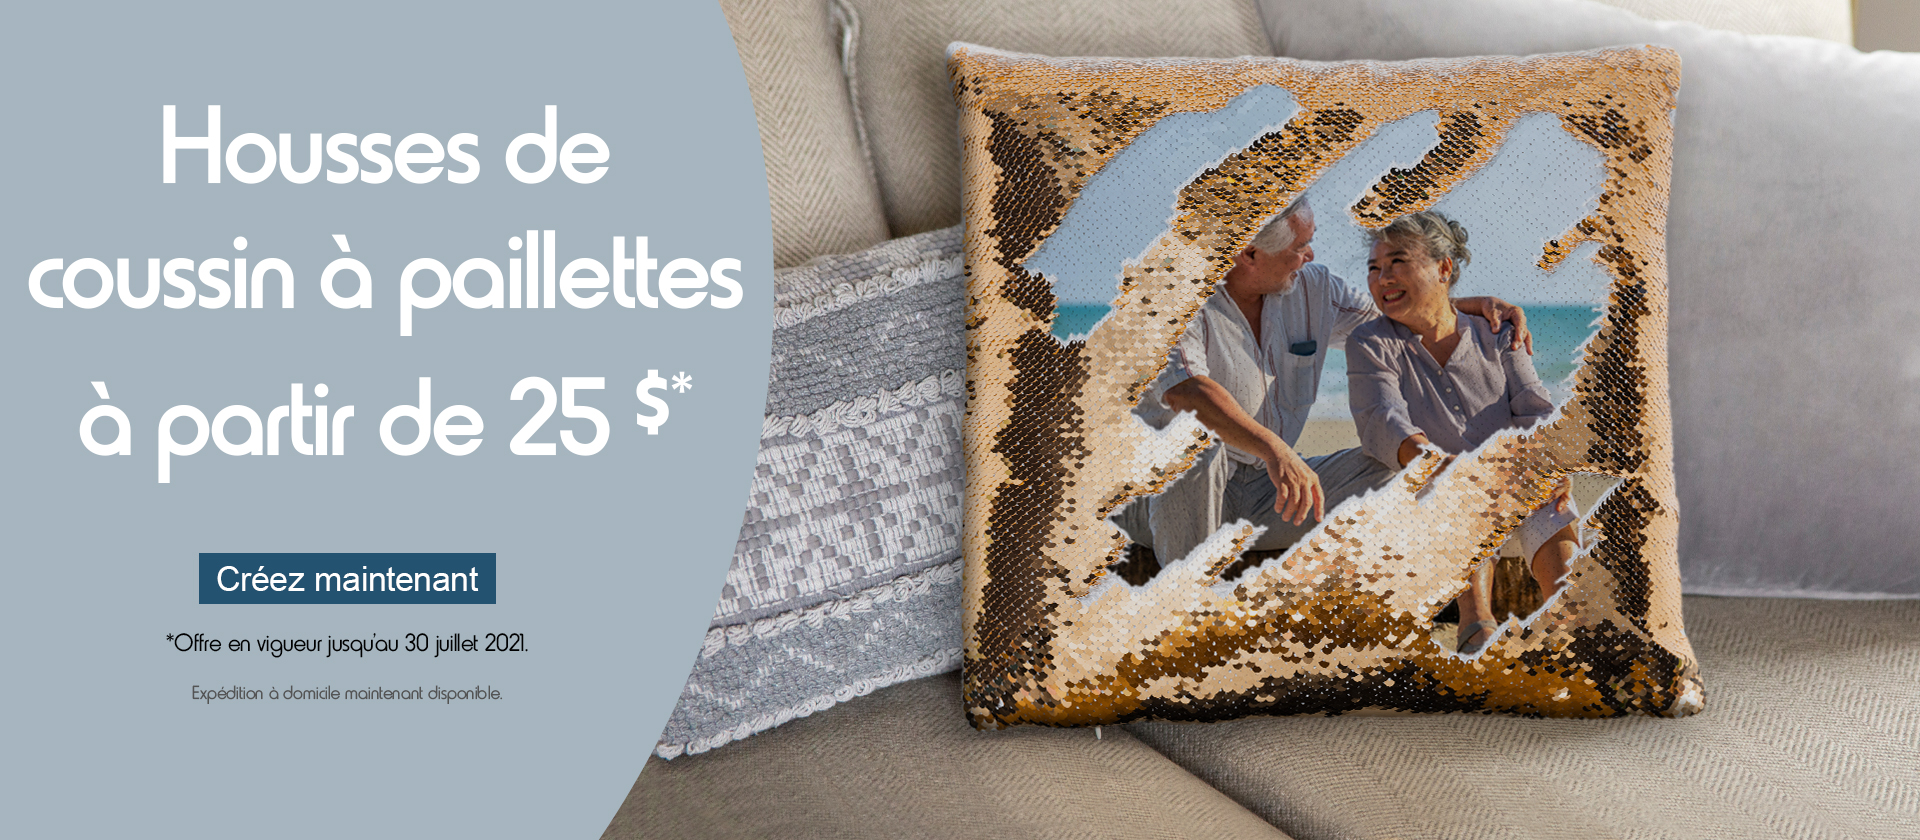 AccessibilityHomeCarouselImage5